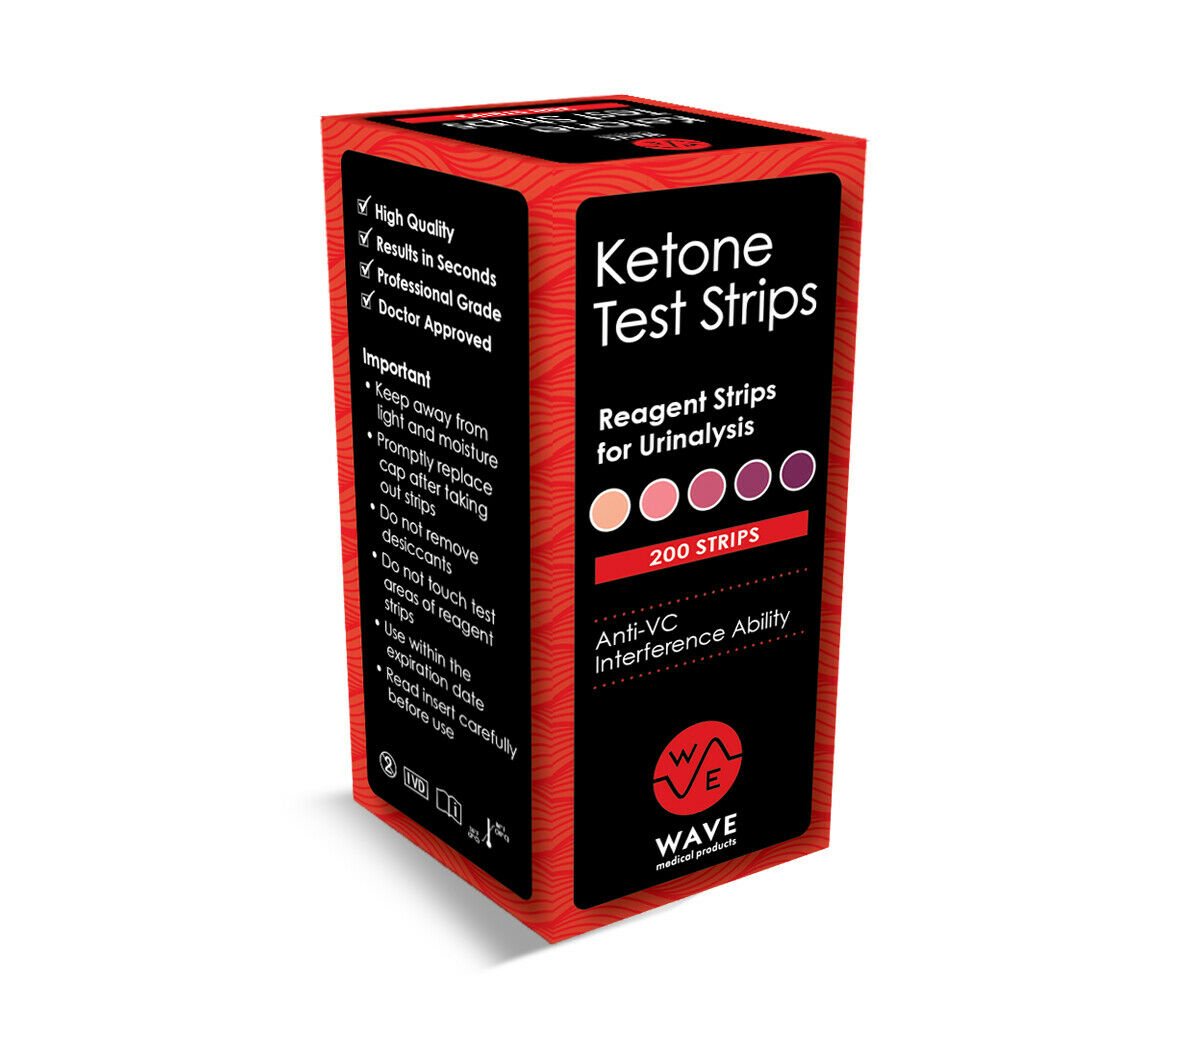 NEW HIGHEST ACCURACY 200 Ketone Test Strips Urine Ketosis At